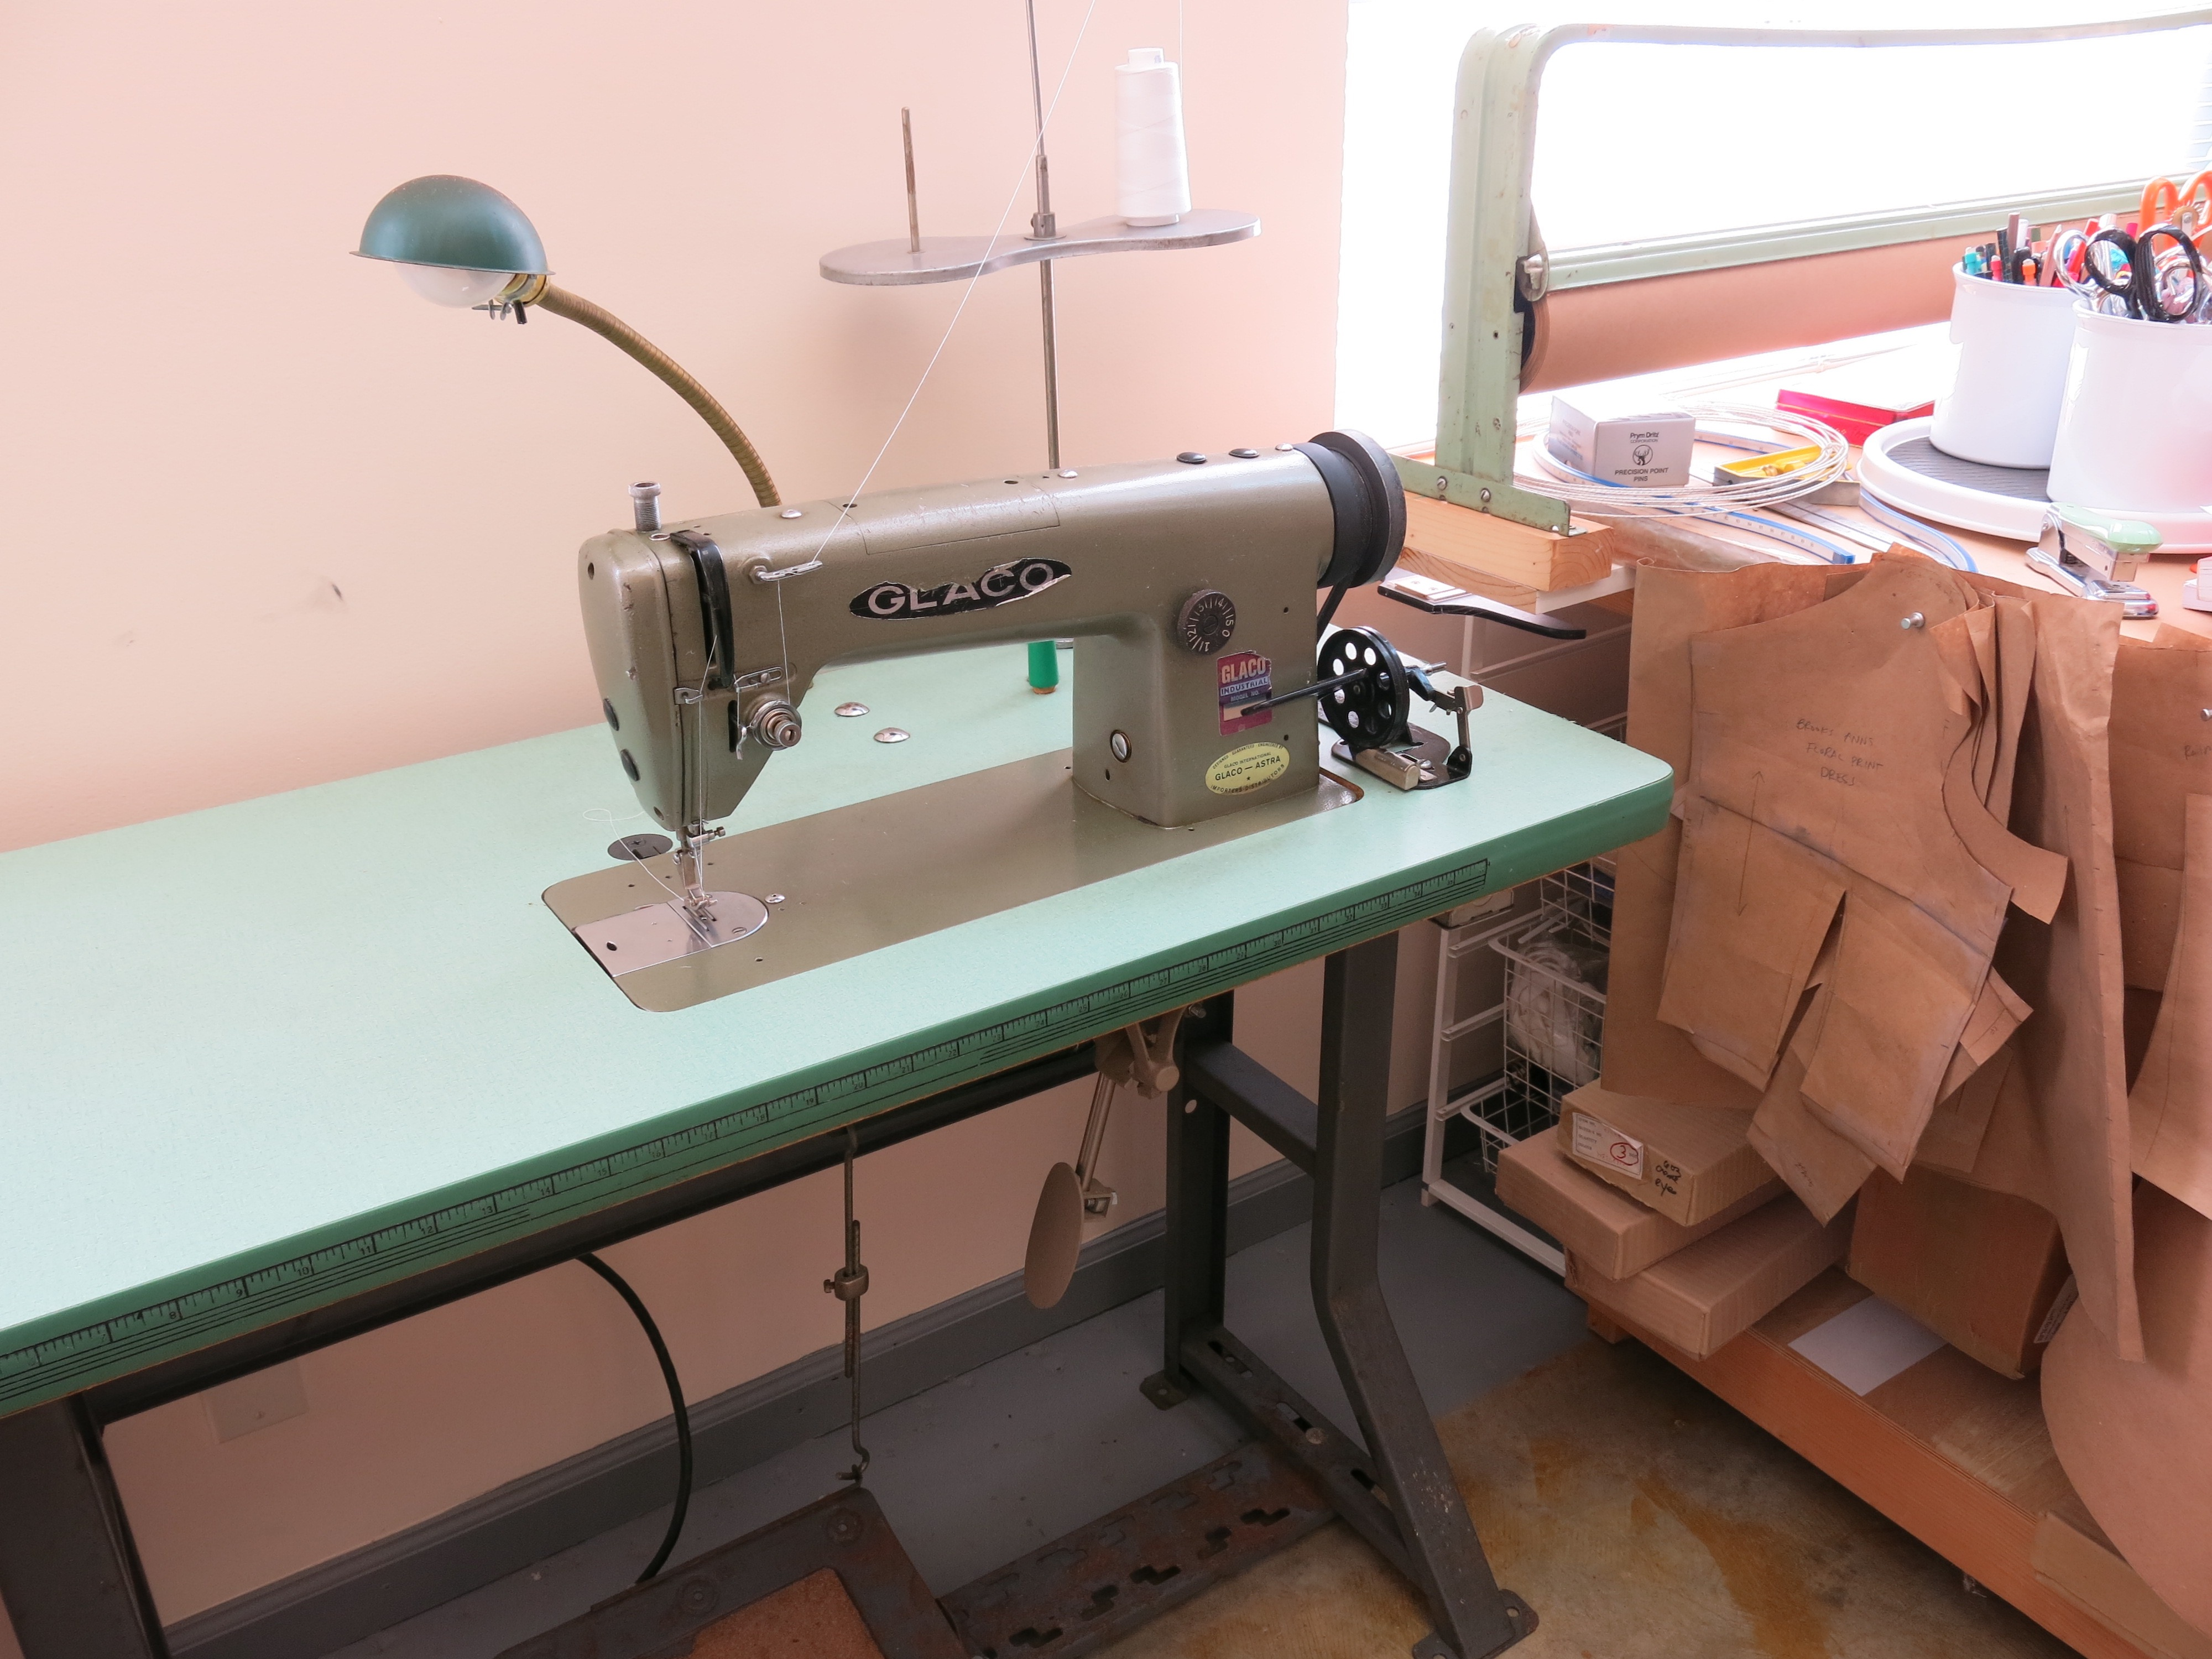 glaco industrial sewing machine